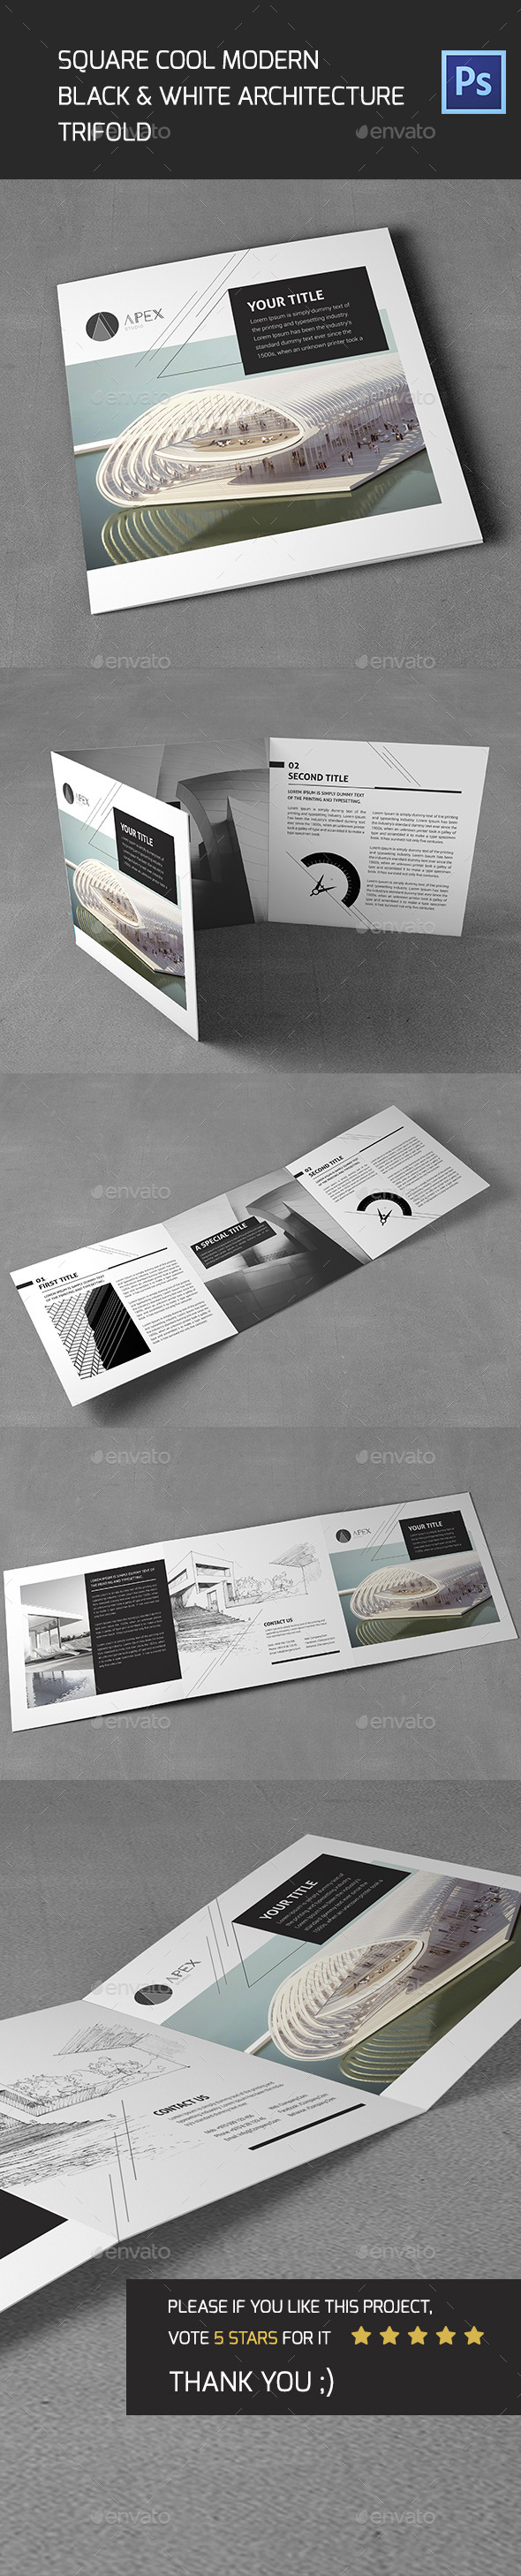 Square Cool Modern Architecture Trifold - Brochures Print Templates